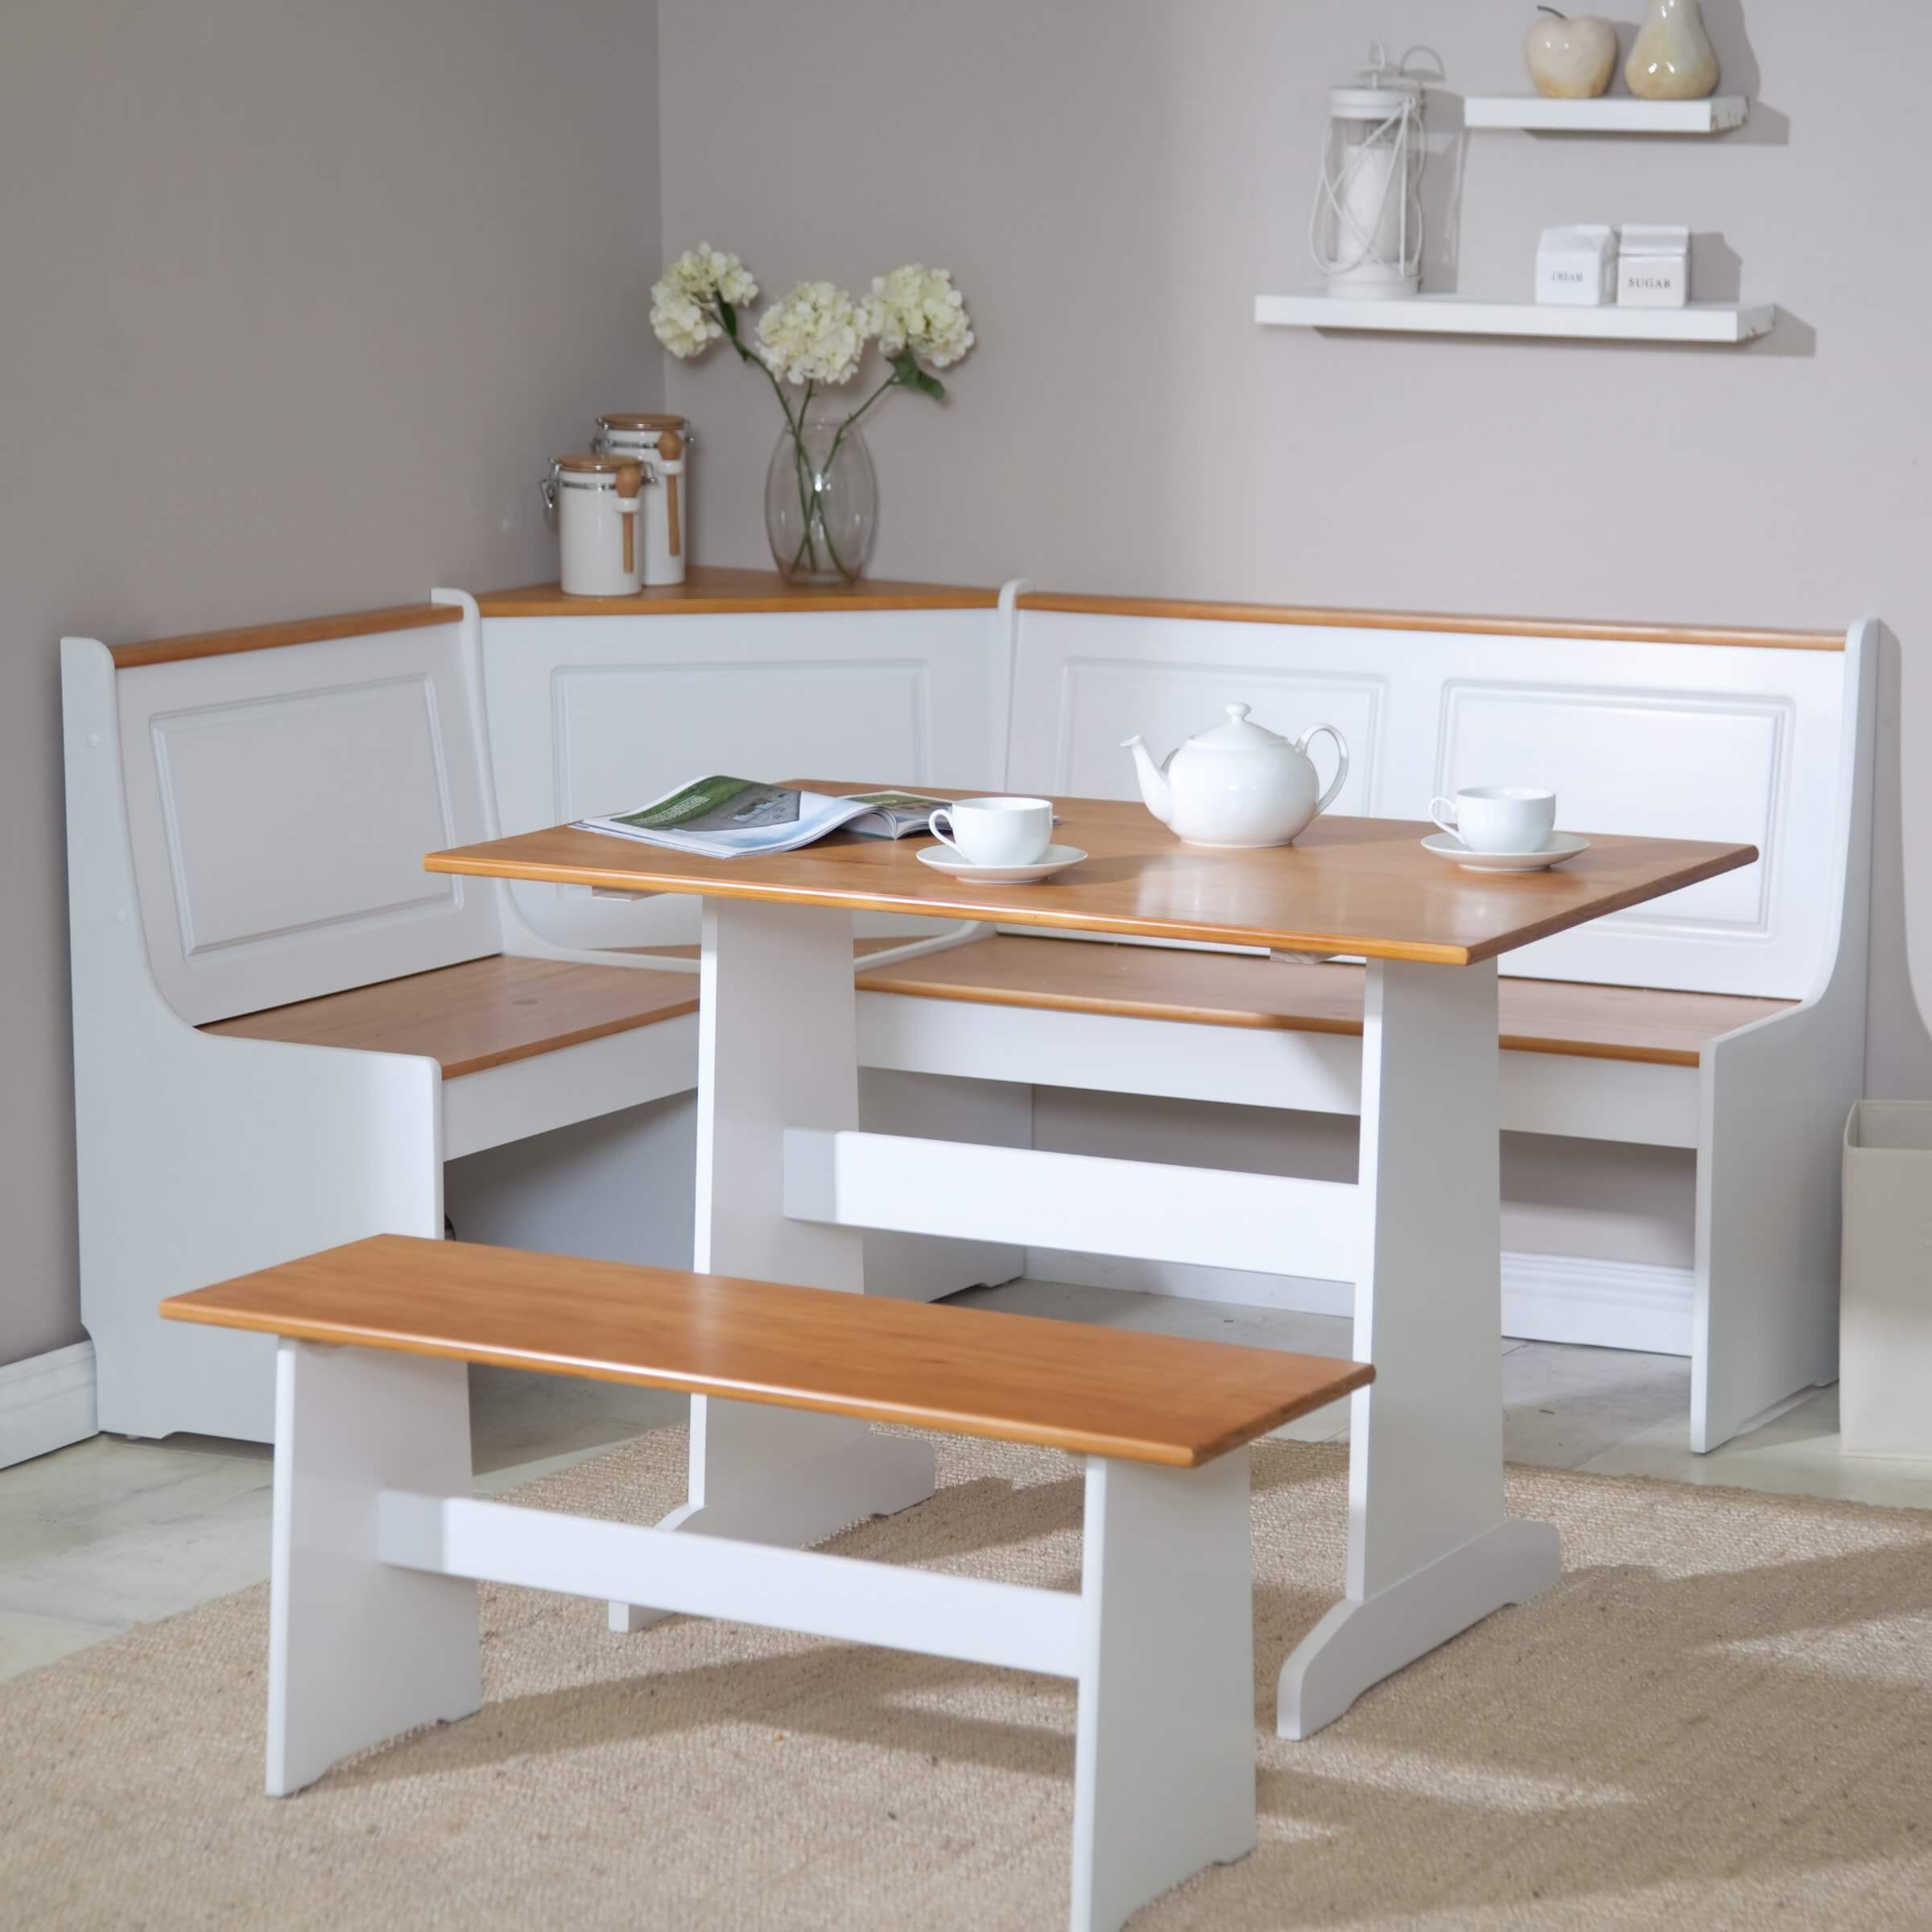 3 Ardmore Breakfast Nook Set